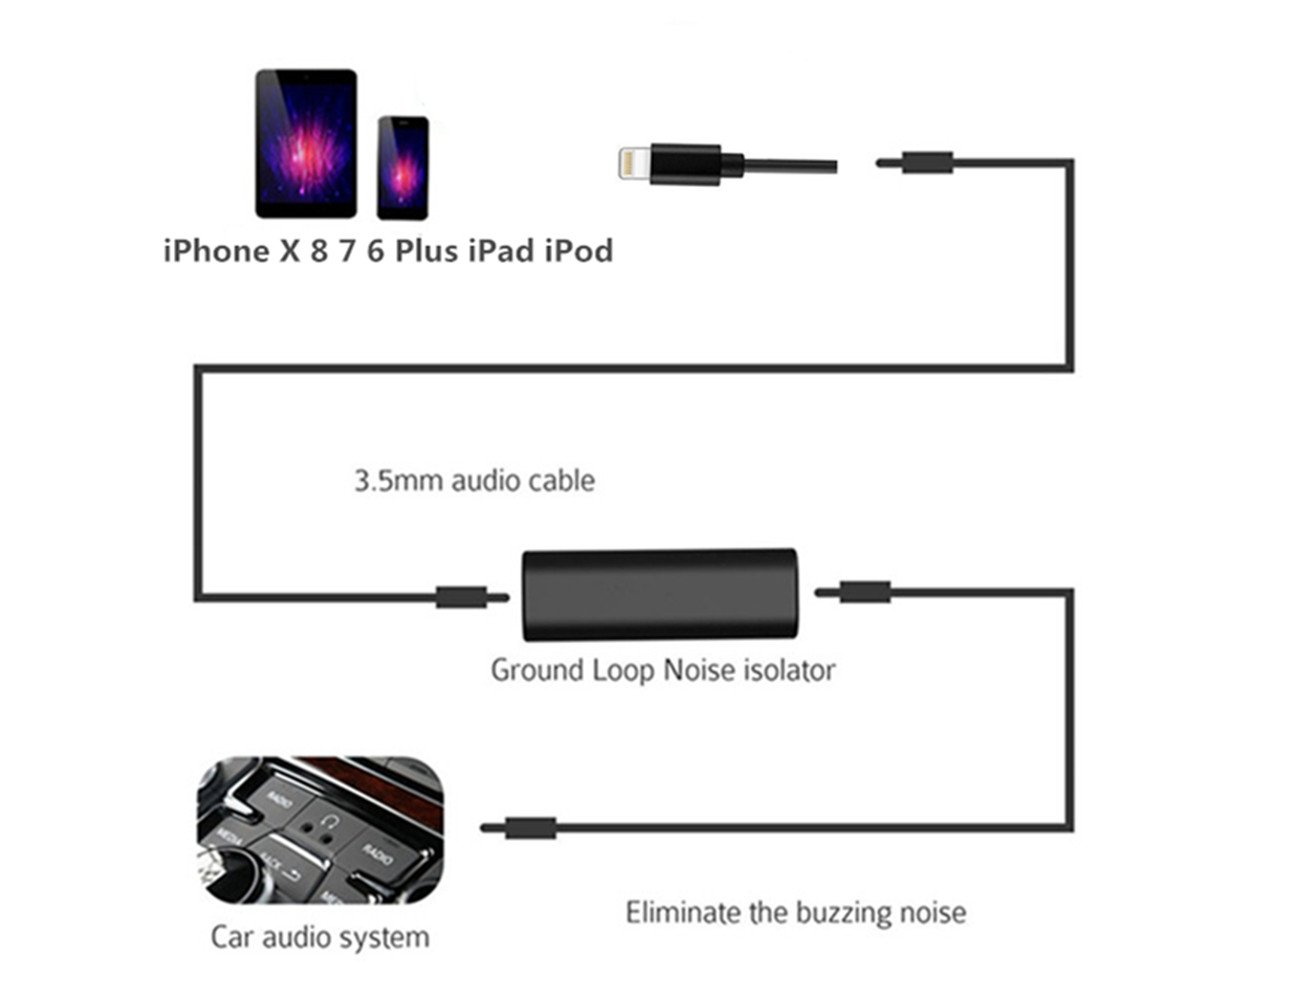 Iphone Aux Charging Car Kits Bmw Mini Cooper X 8 Hands Free Wiring Diagram 2010 7 6 6s Plus Lightning Audio Adapter With Usb Charger Echo And Noise